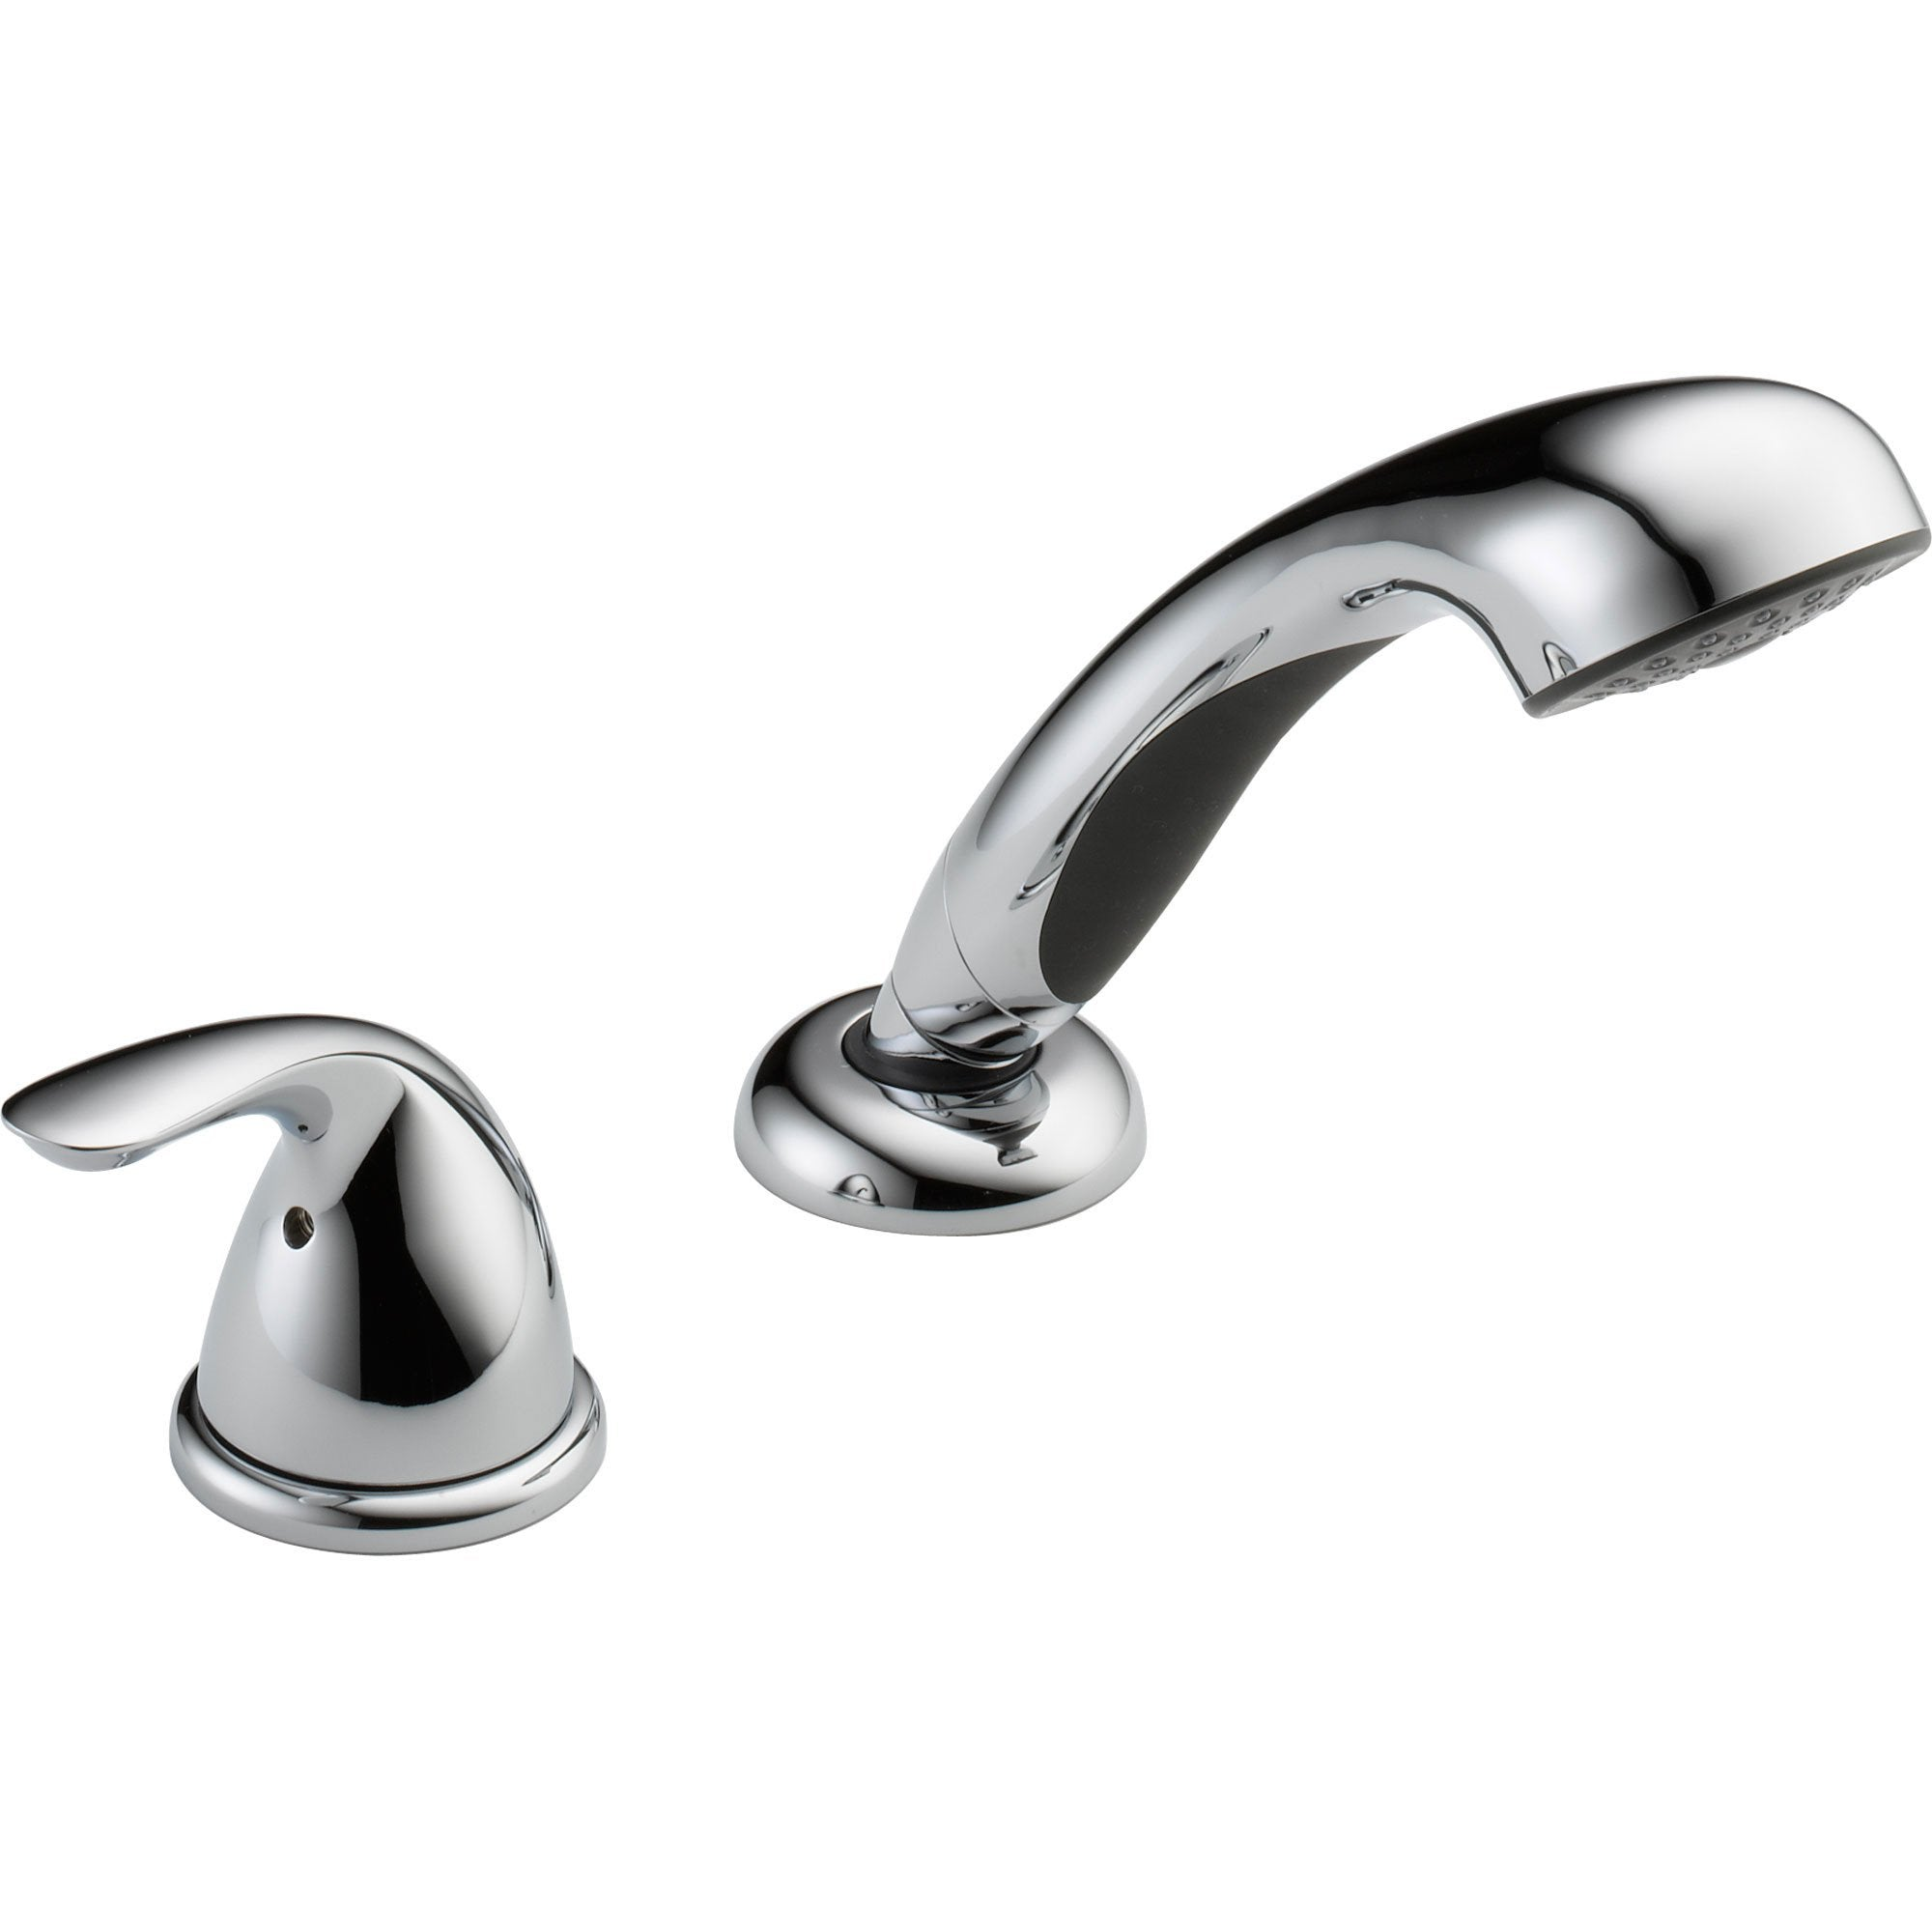 Delta Classic Roman Tub Faucet Hand-held Shower in Chrome 748774